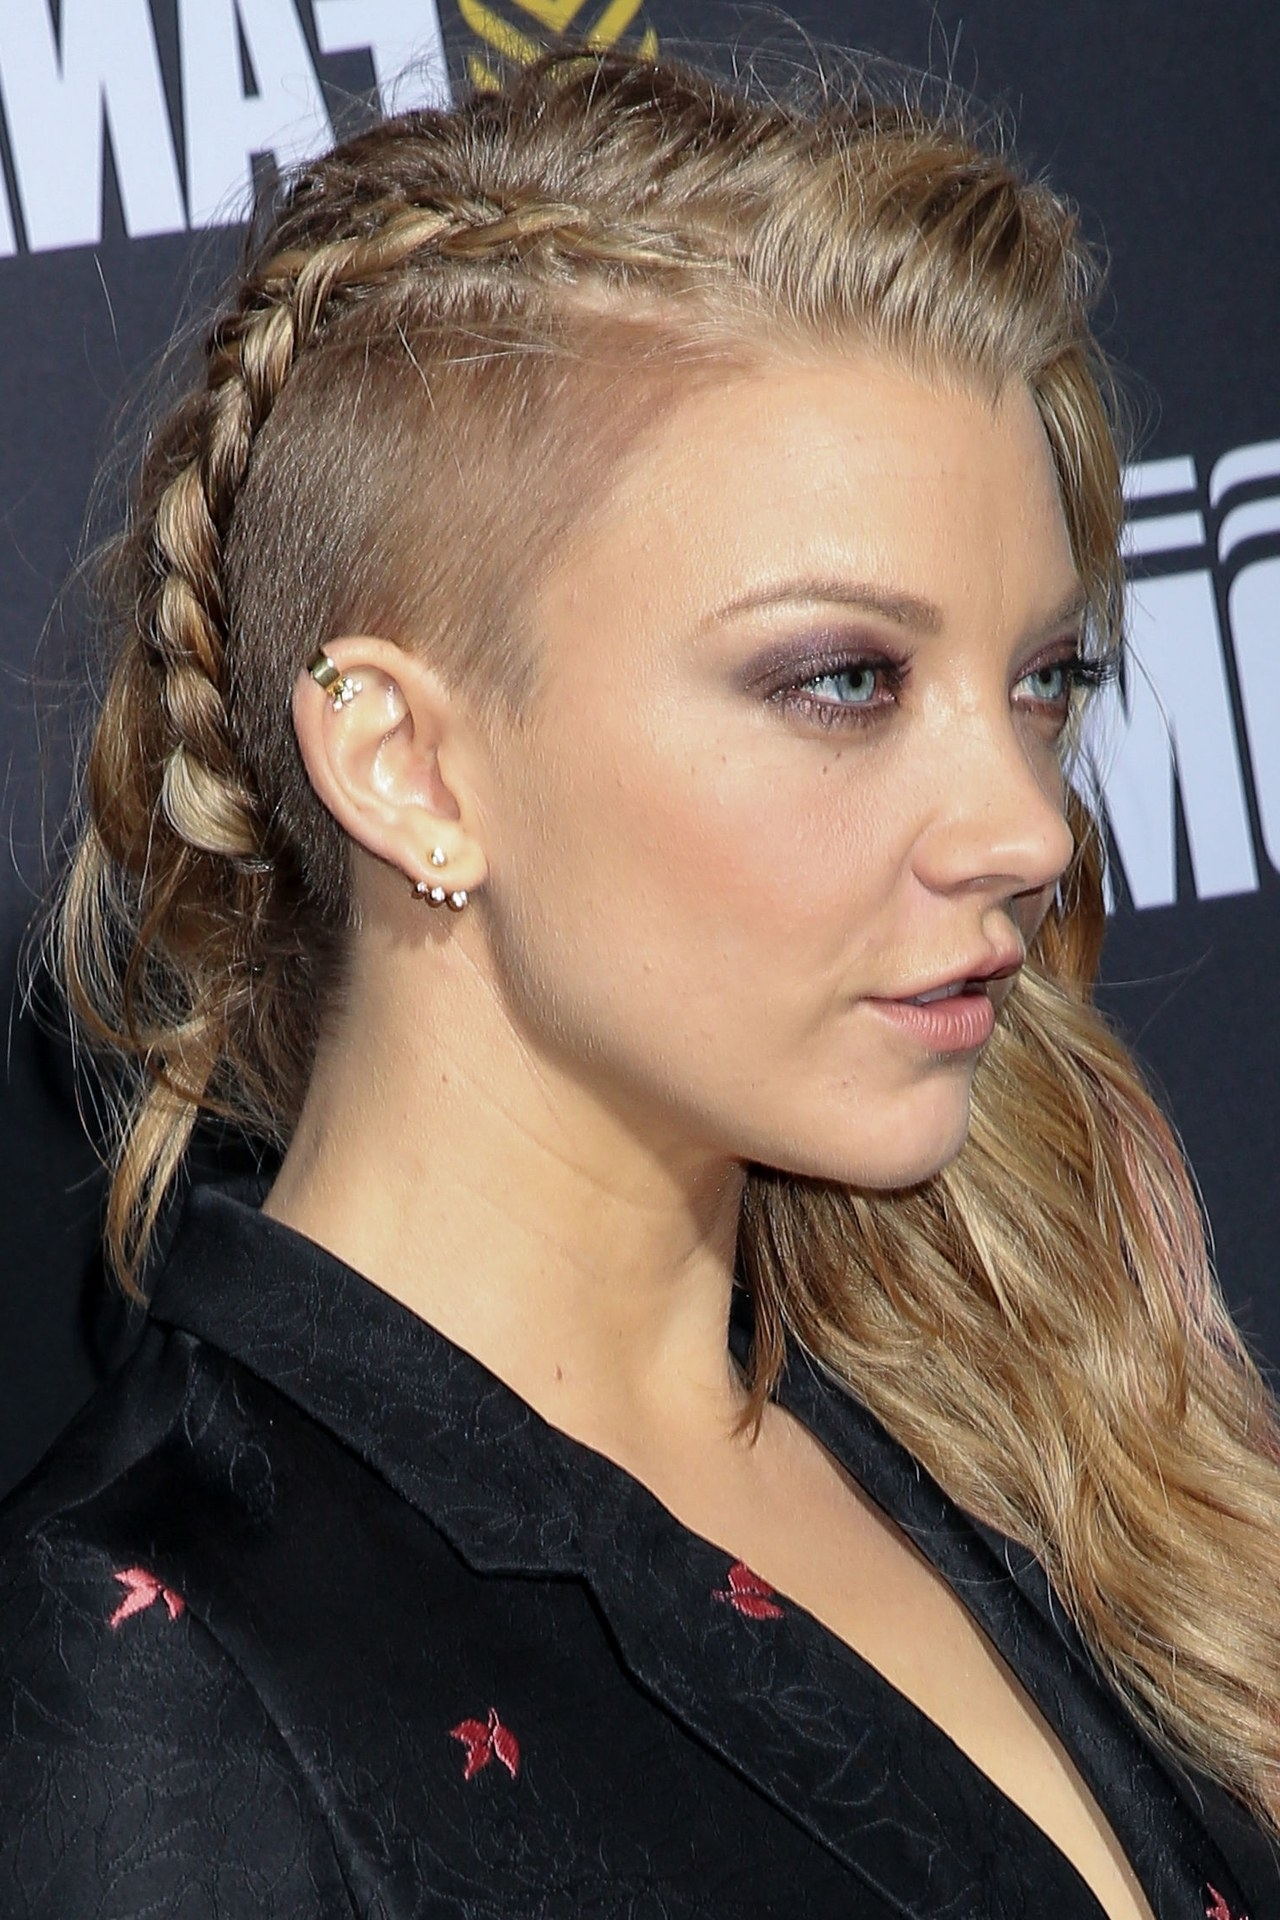 Natalie Dormer Wears A Fierce Braid Comic Con's Mtvu Fandom Awards Within Fashionable Fiercely Braided Hairstyles (View 8 of 15)